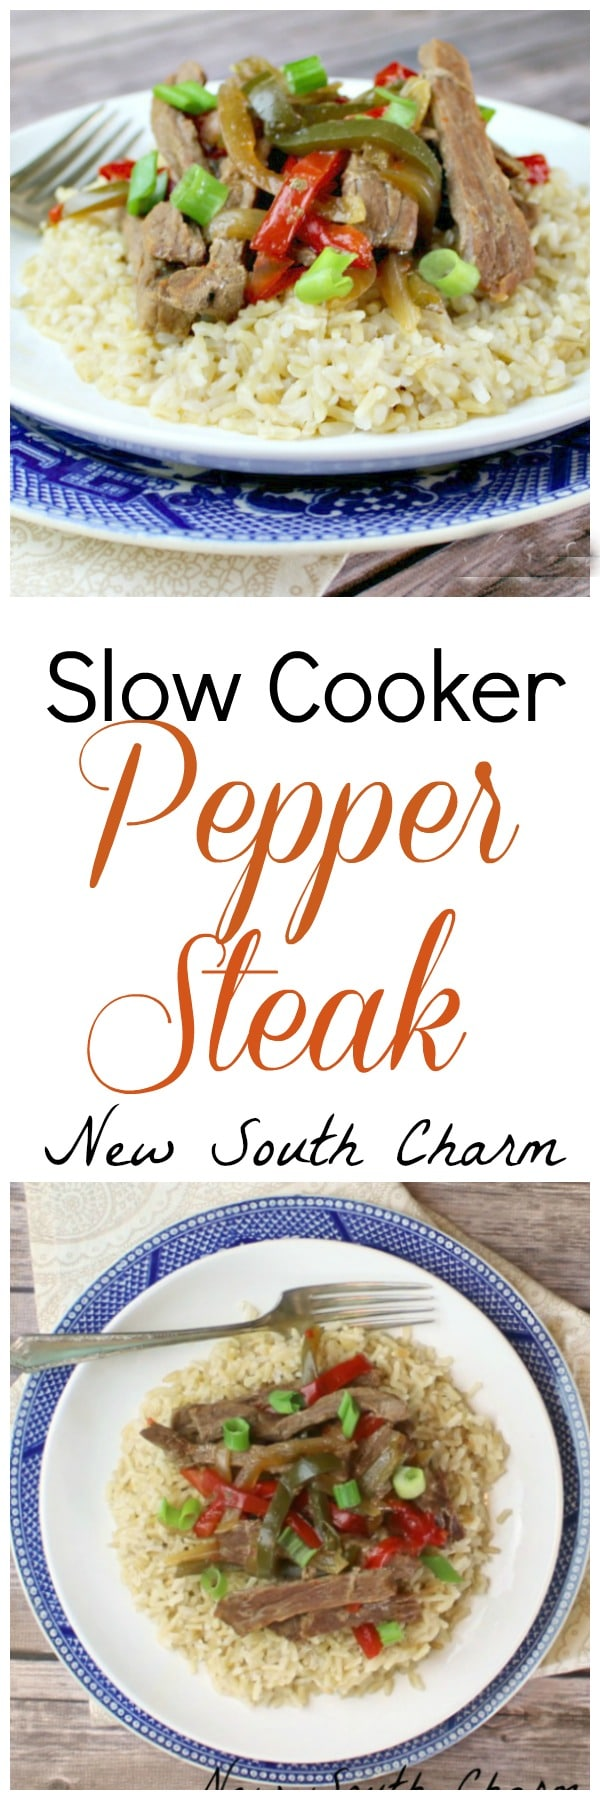 Slow Cooker Pepper Steak EASY and inexpensive to make. Just like the take out version but made a little healthier.